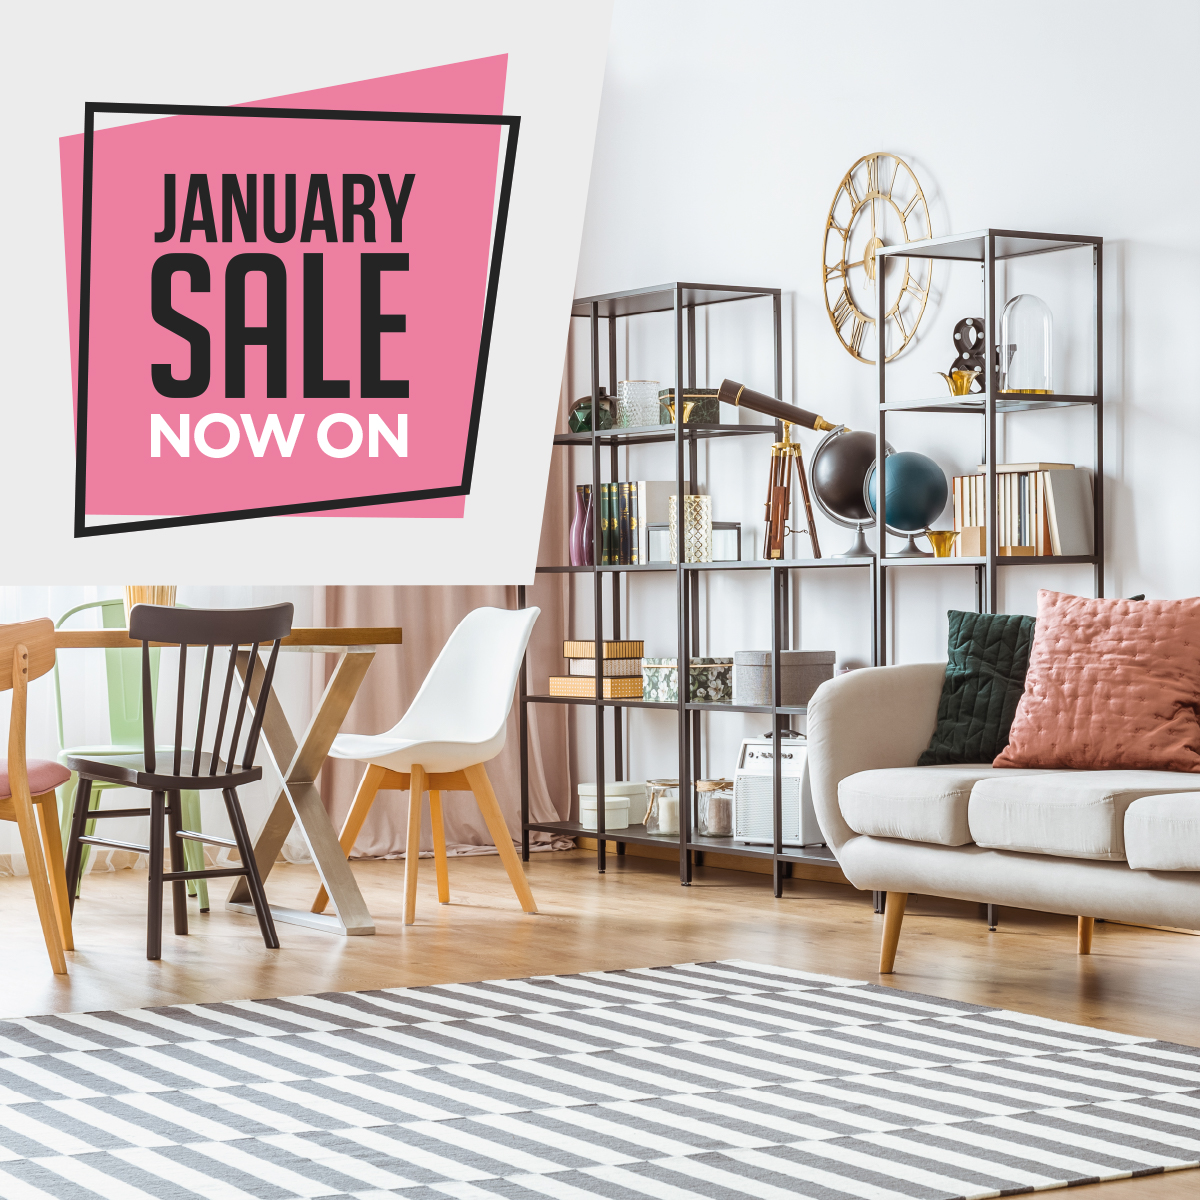 January Sales are NOW ON